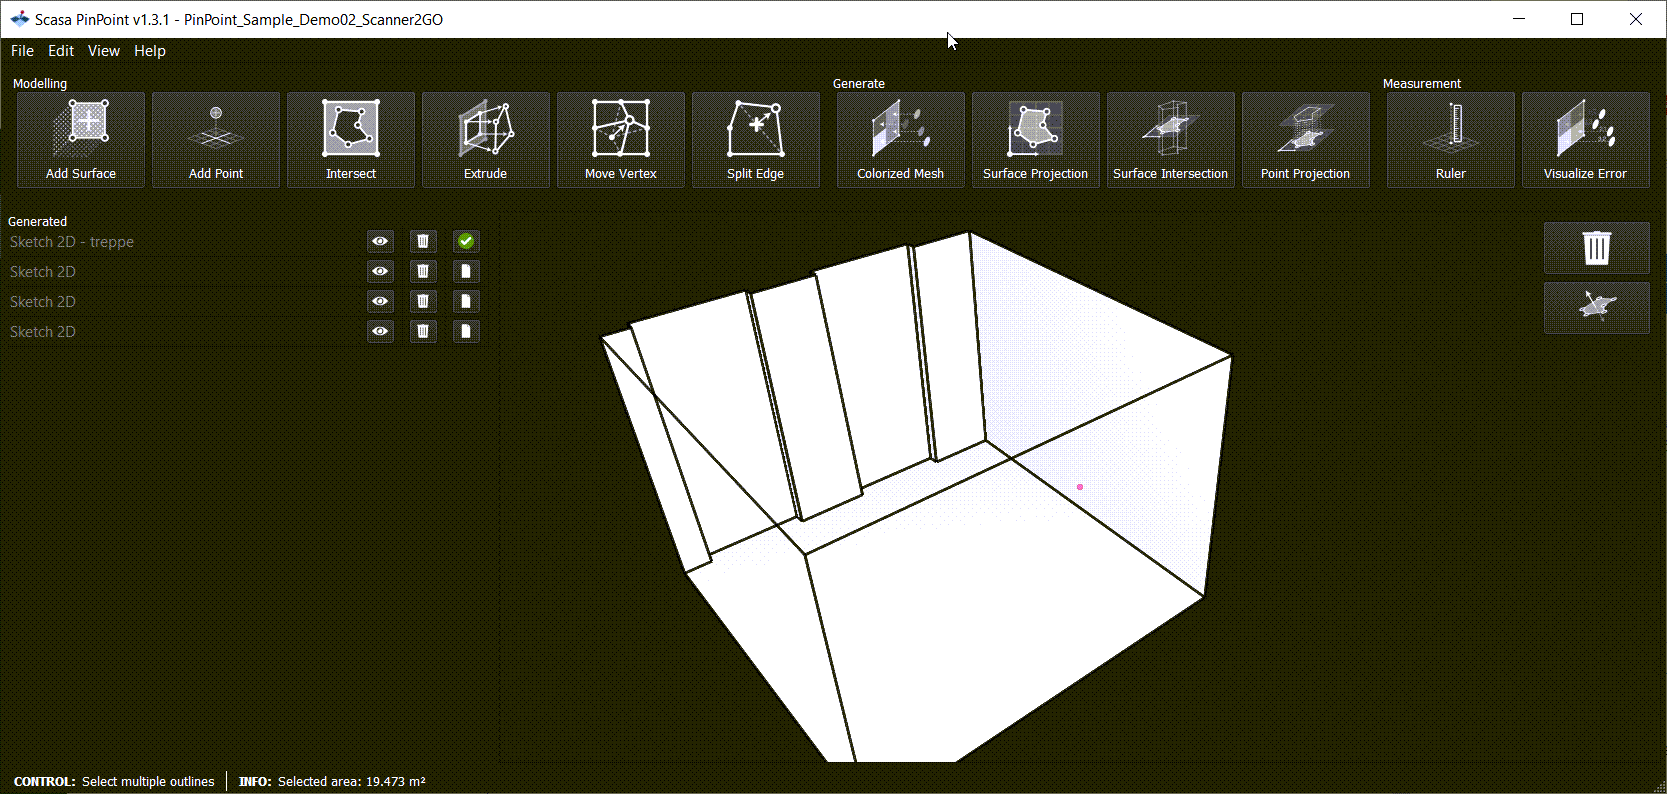 Funktion_Extrude_3D_Model_im_insspect_Mode_-_PinPoint_Tutorial_Scanner2GO.png